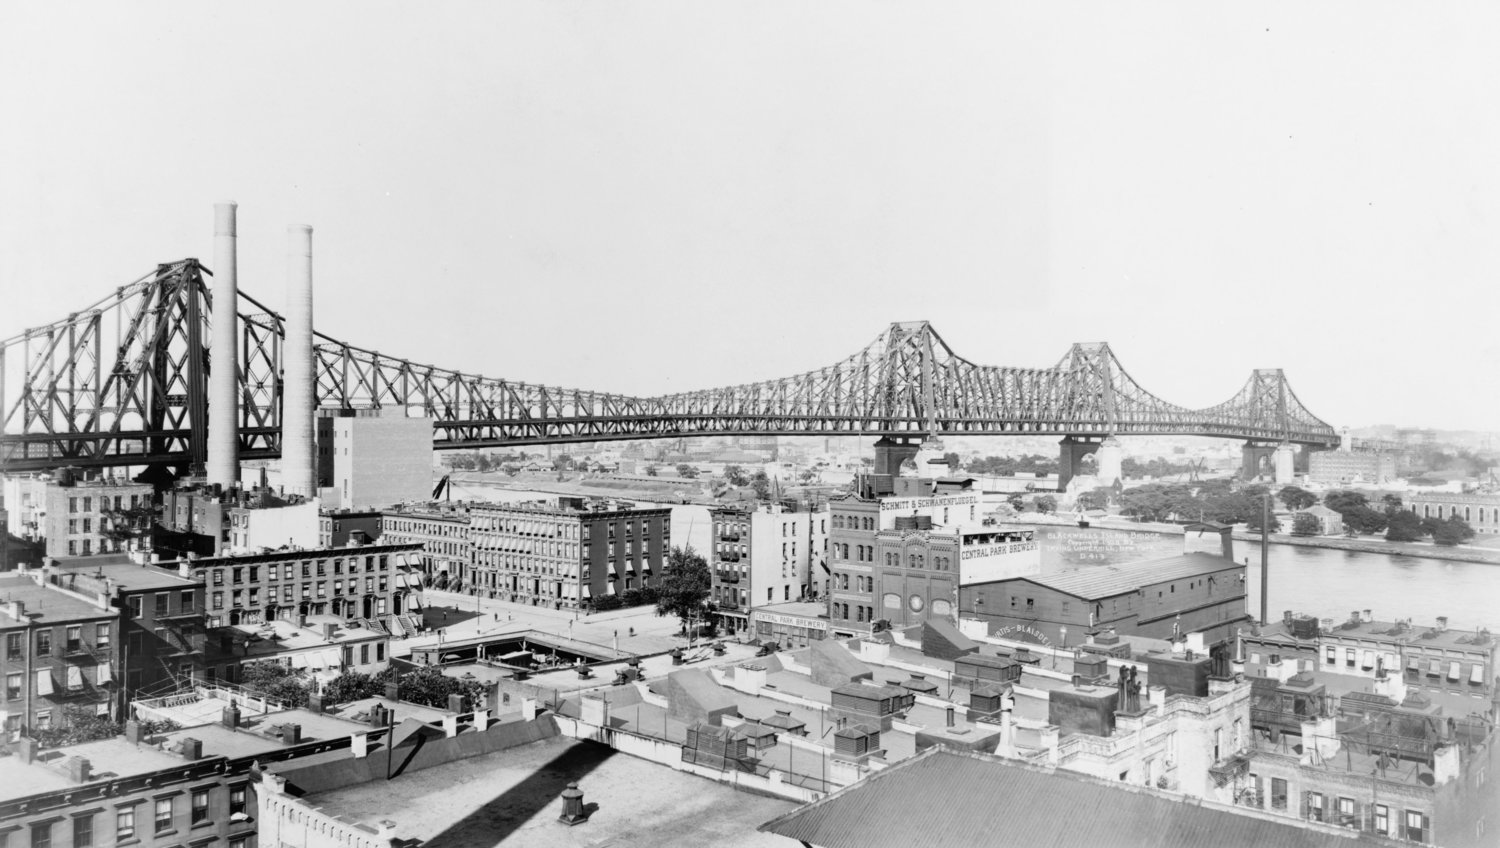 Queensboro Bridge in 1908